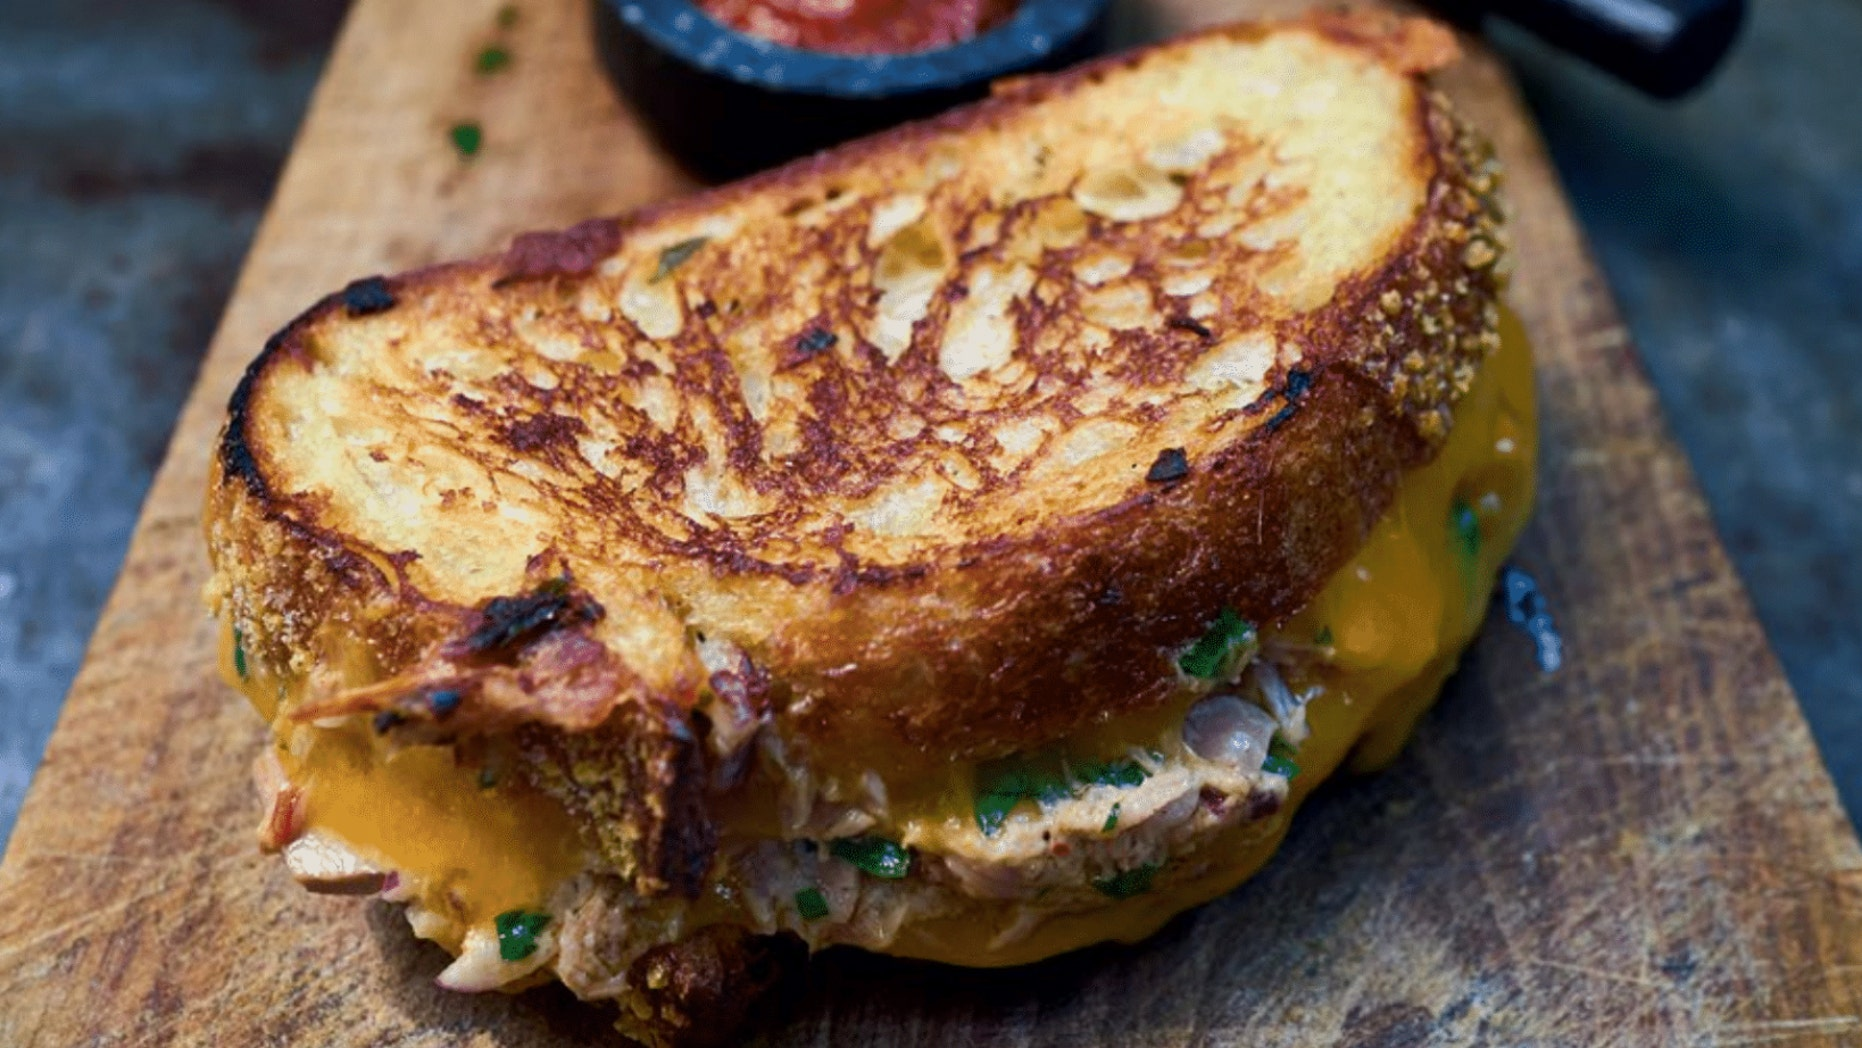 """This seemingly simple toasted sandwich with tuna and lots of cheese is a real American classic,"" writes Bart Van Olphen in his"